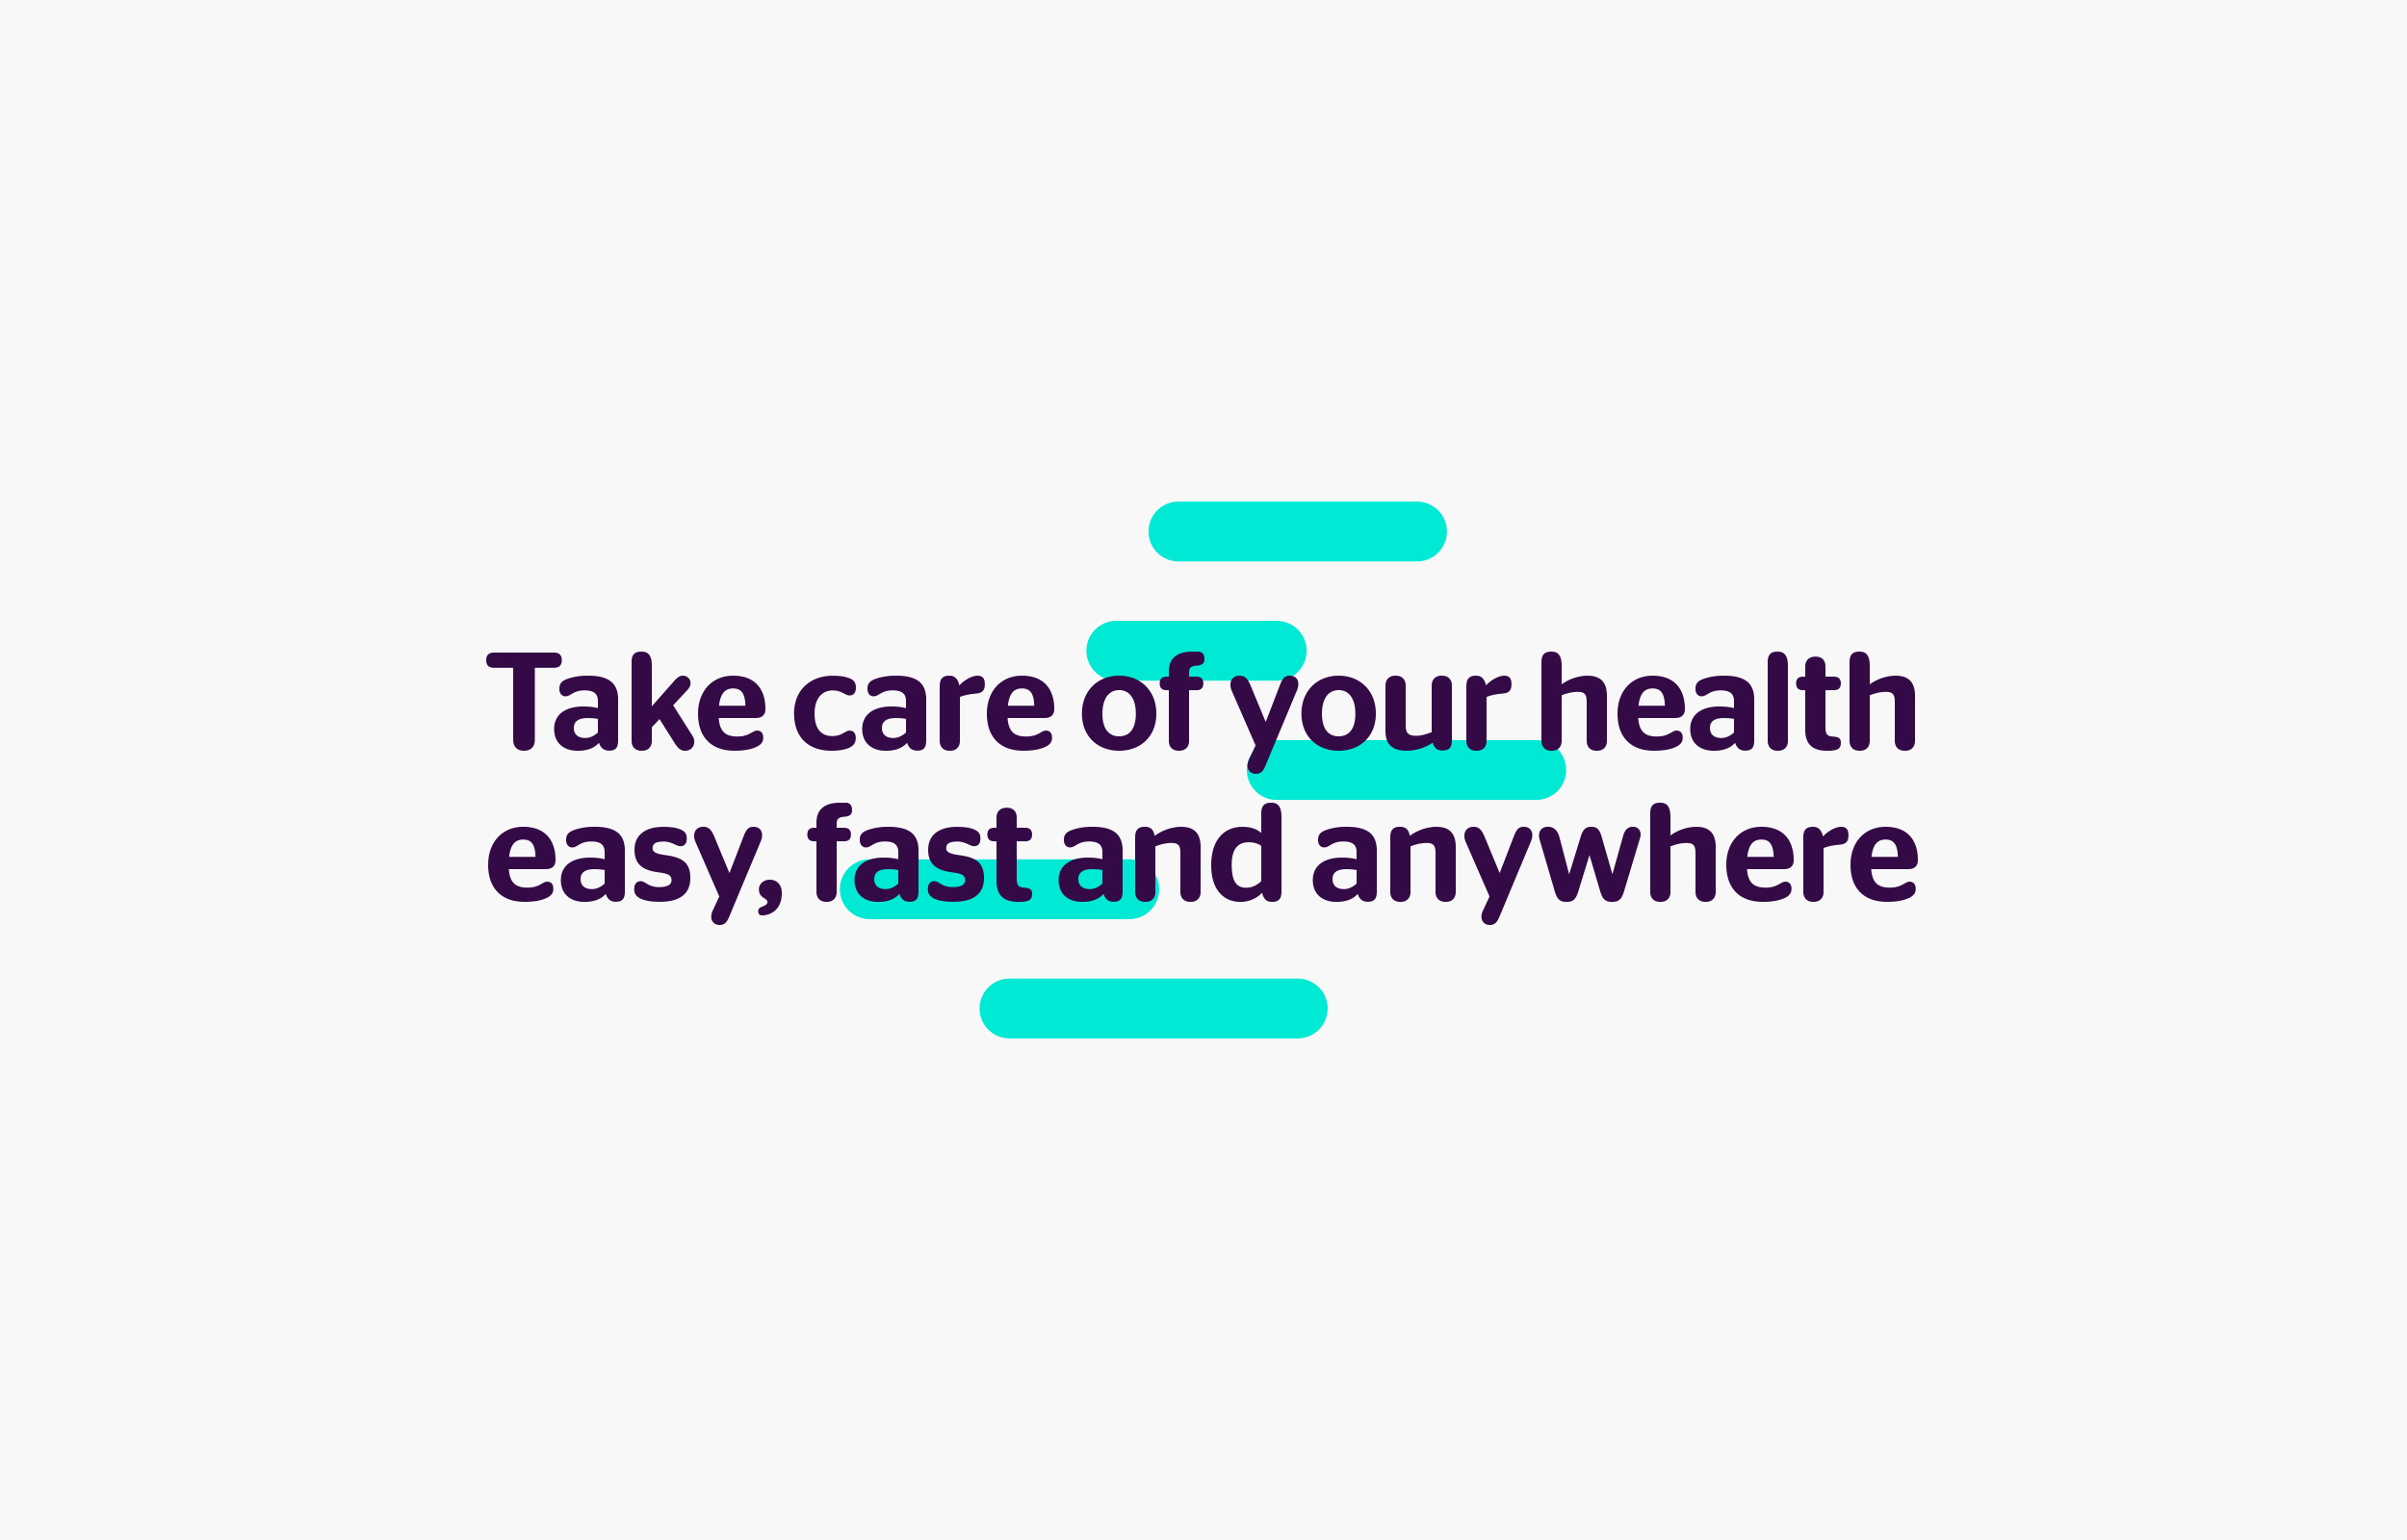 Branding and brand identity designed for Farmaxpress, a pharmacy based in Santo Domingo, Domenican Republic, that provides fast health anywhere and anytime.